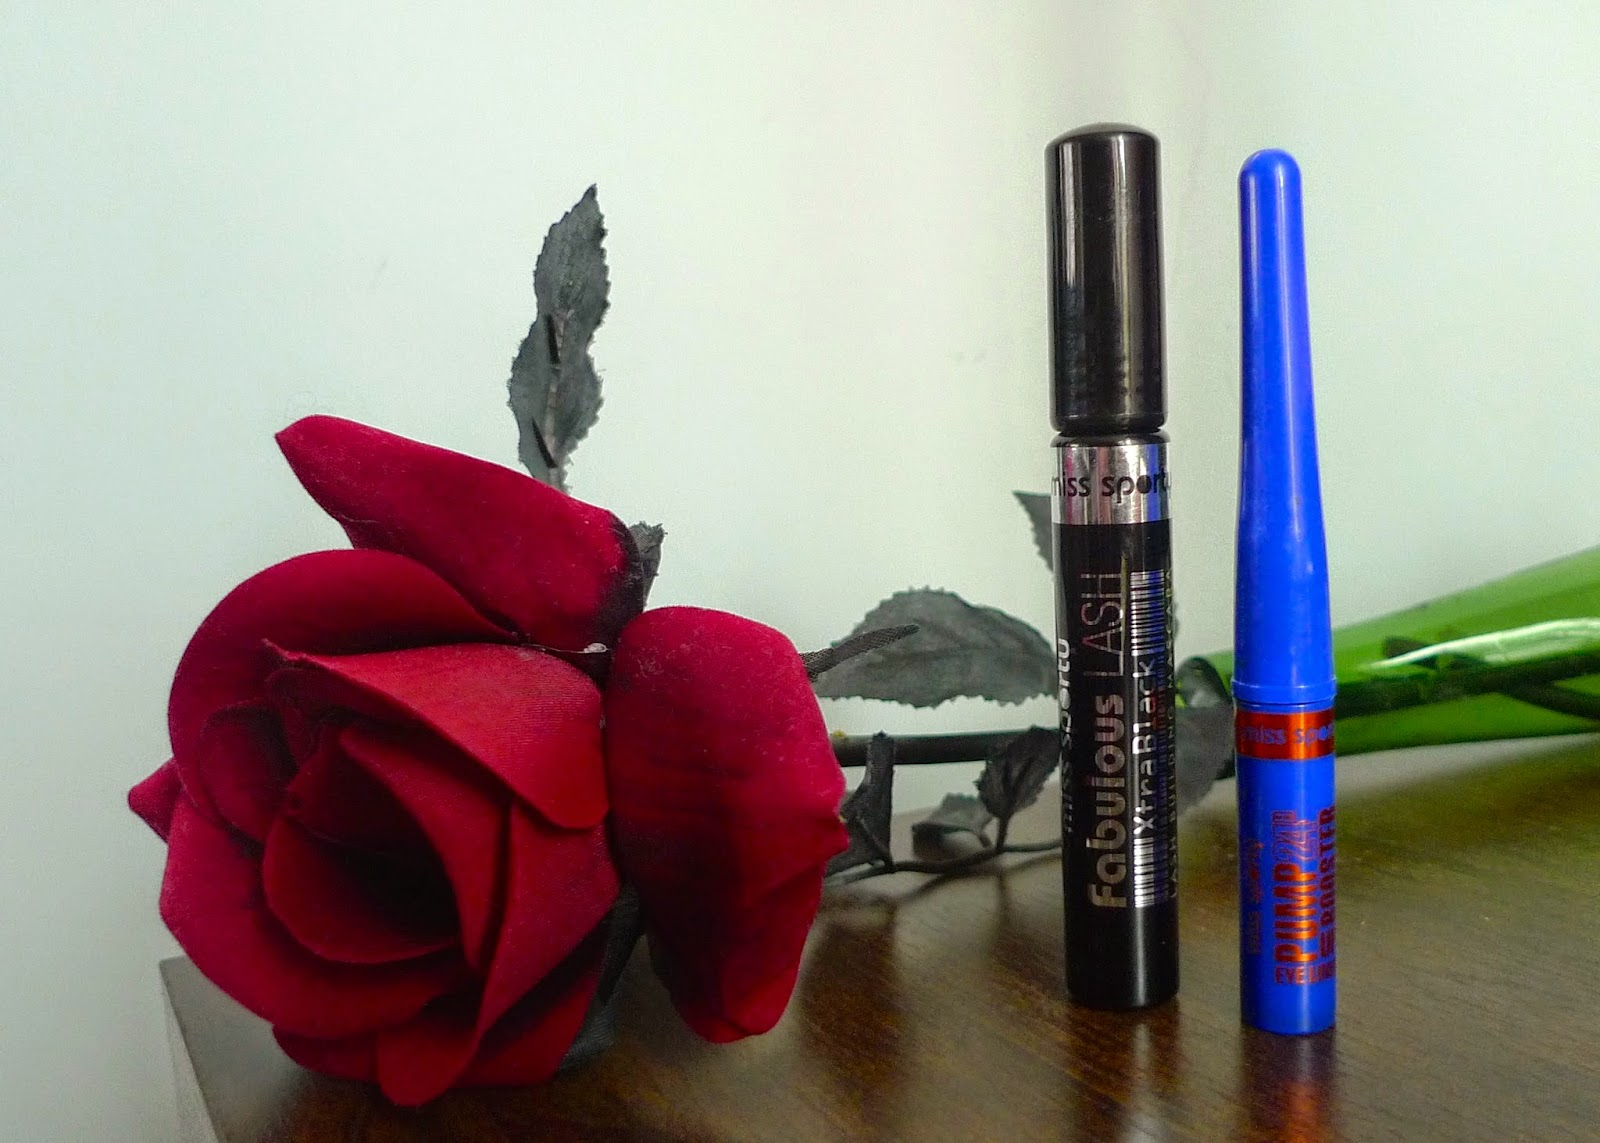 Review of Miss Sporty's Pump Up Booster Waterproof eyeliner and Fabulous Lash Mascara